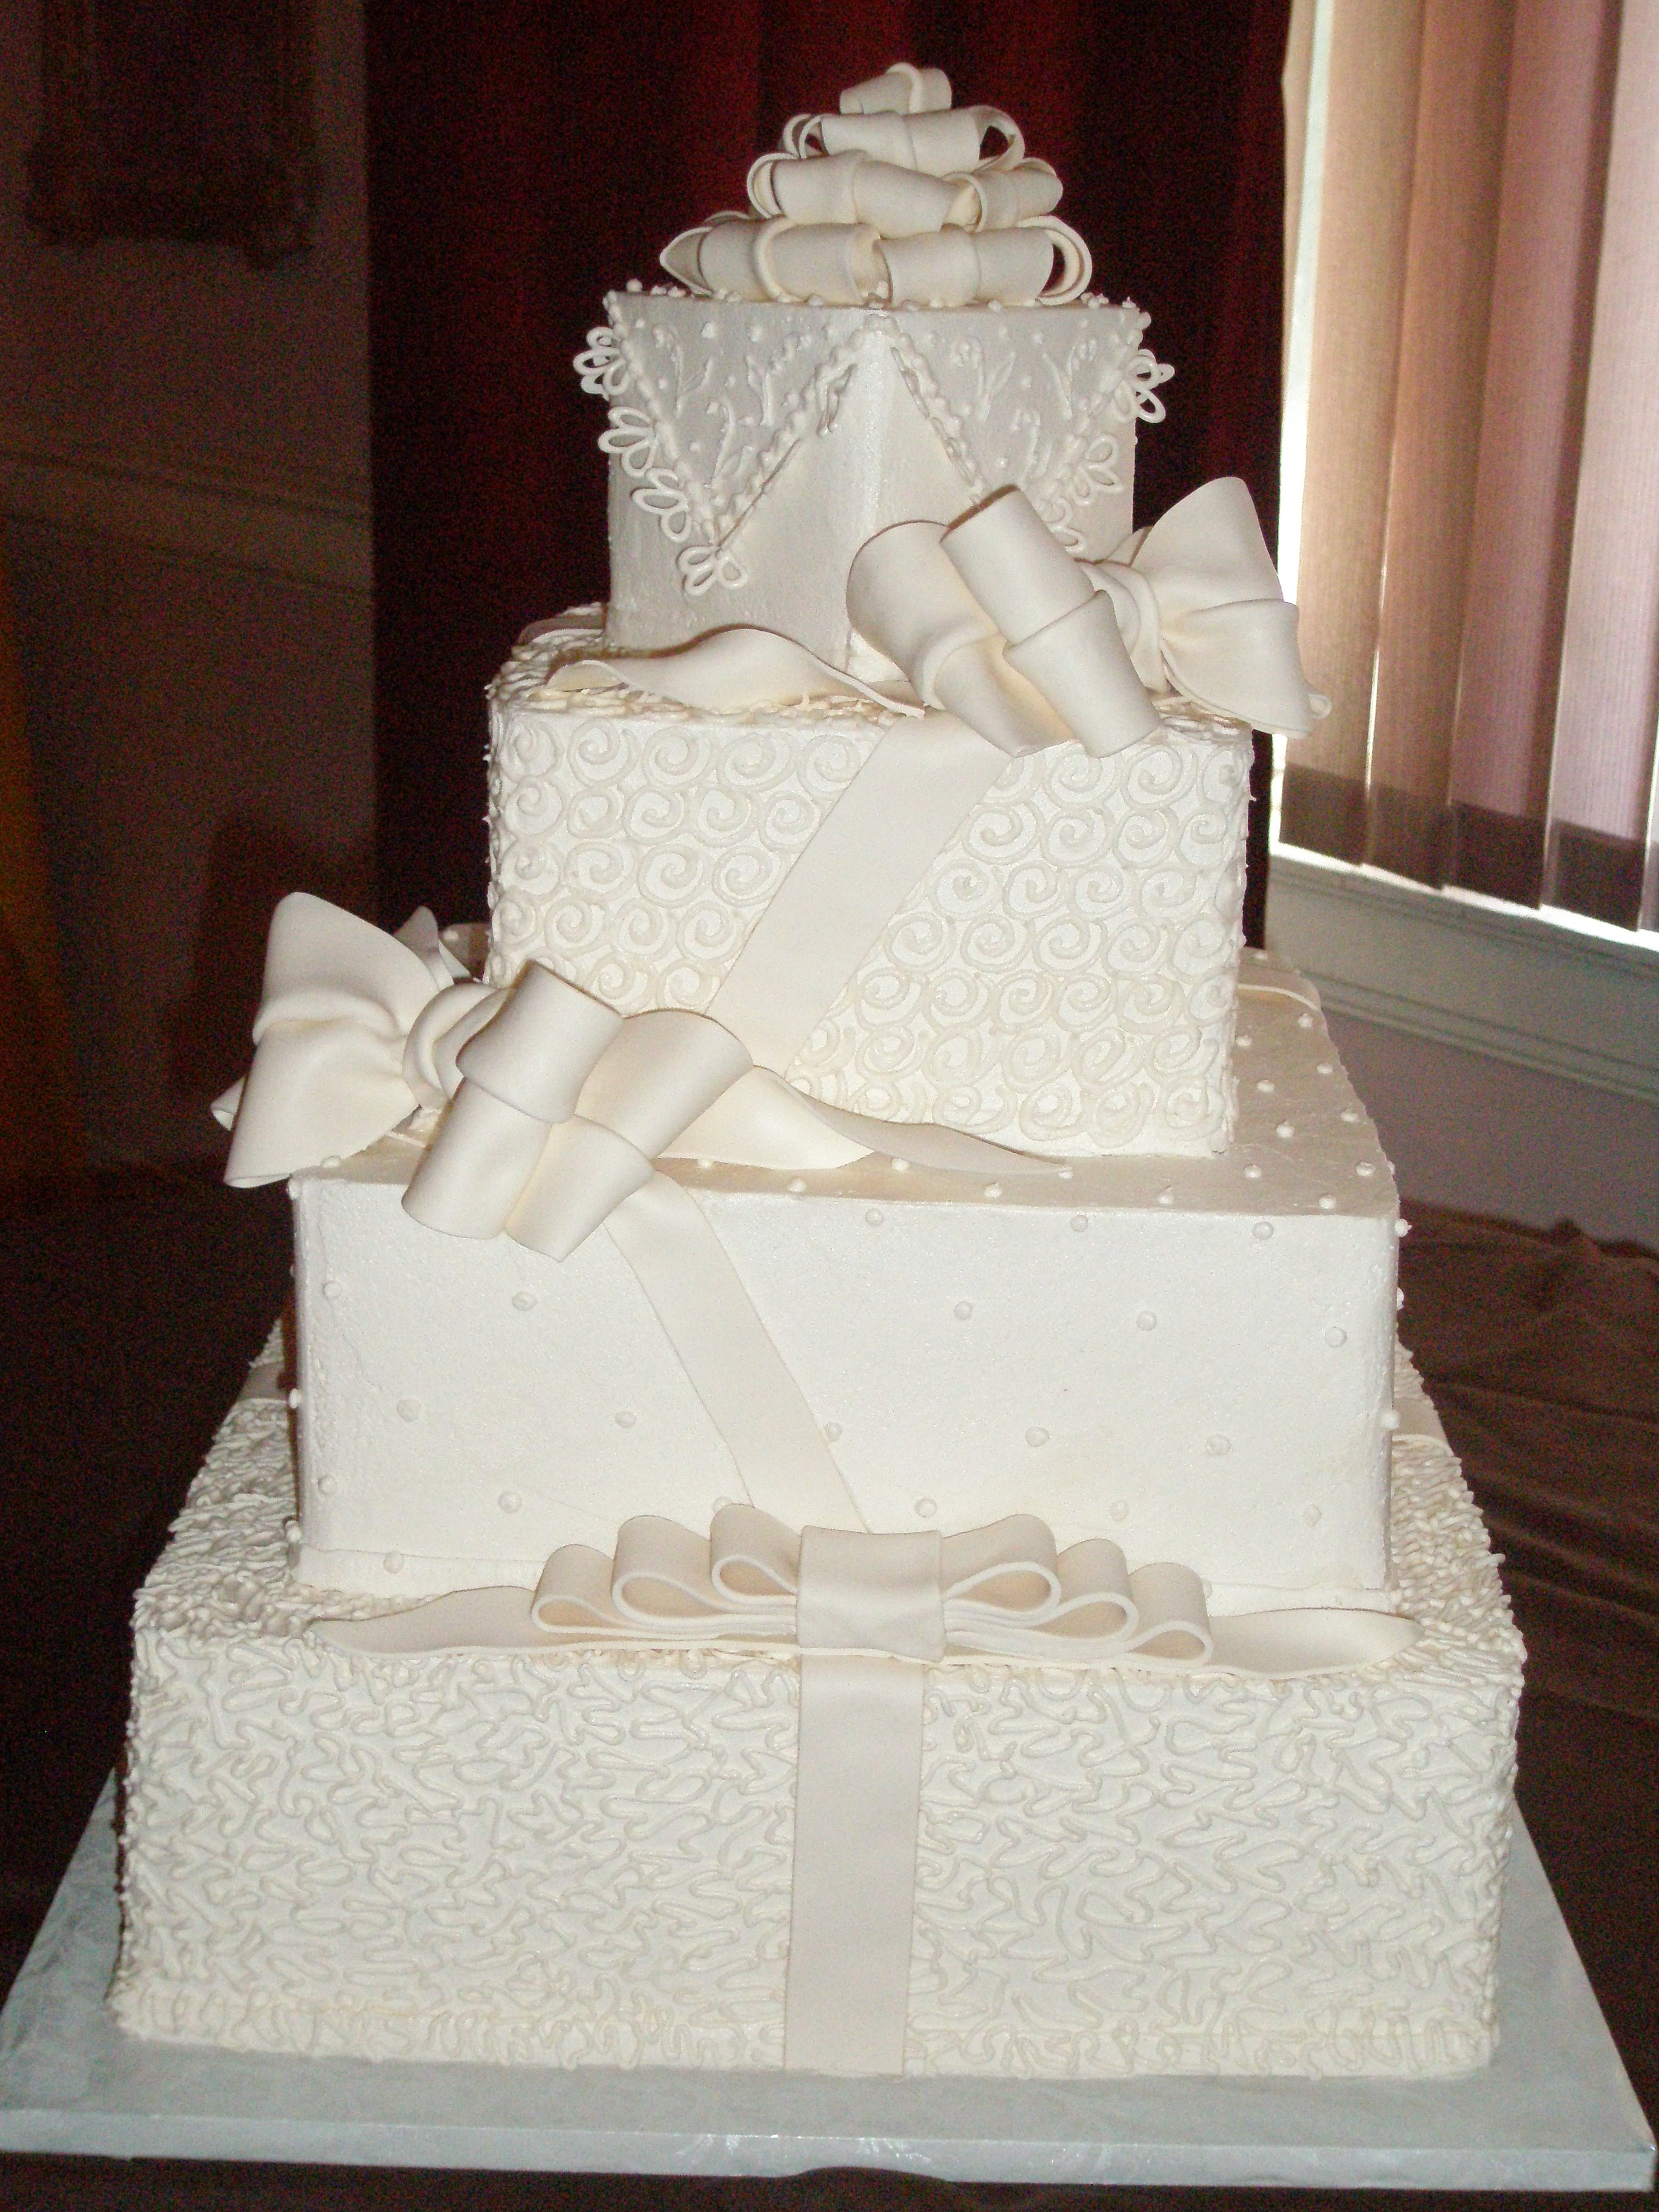 Wedding Cakes Cleveland Ohio  Wel e to Cakes by Wanda Cleveland OH